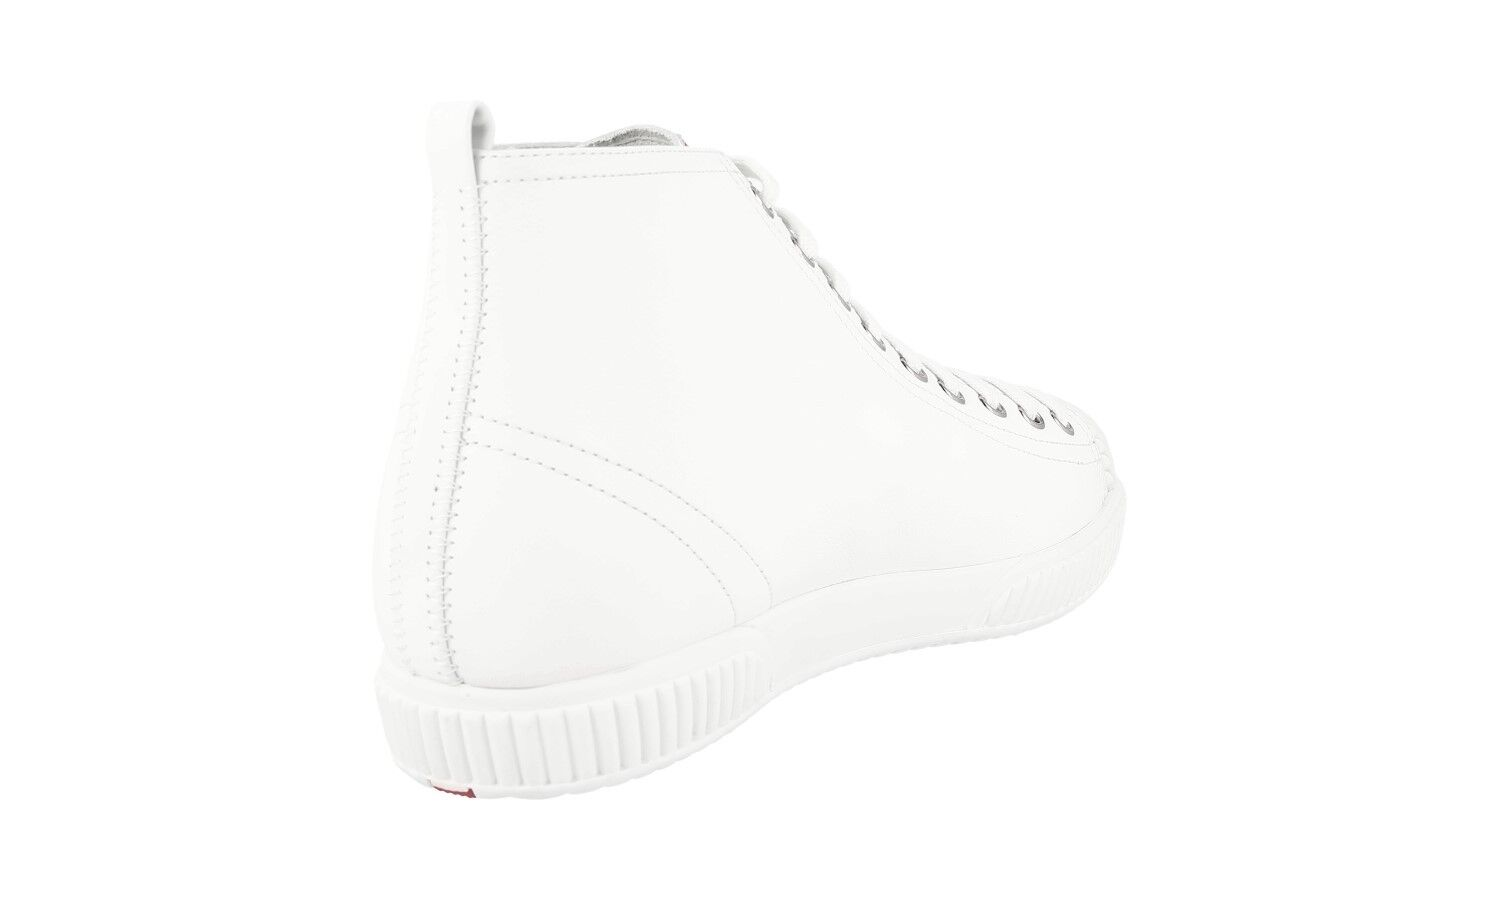 AUTHENTIC LUXURY PRADA baskets chaussures chaussures chaussures 3T5877 blanc NEW US 11 EU 41 41,5 UK 8 be3b25